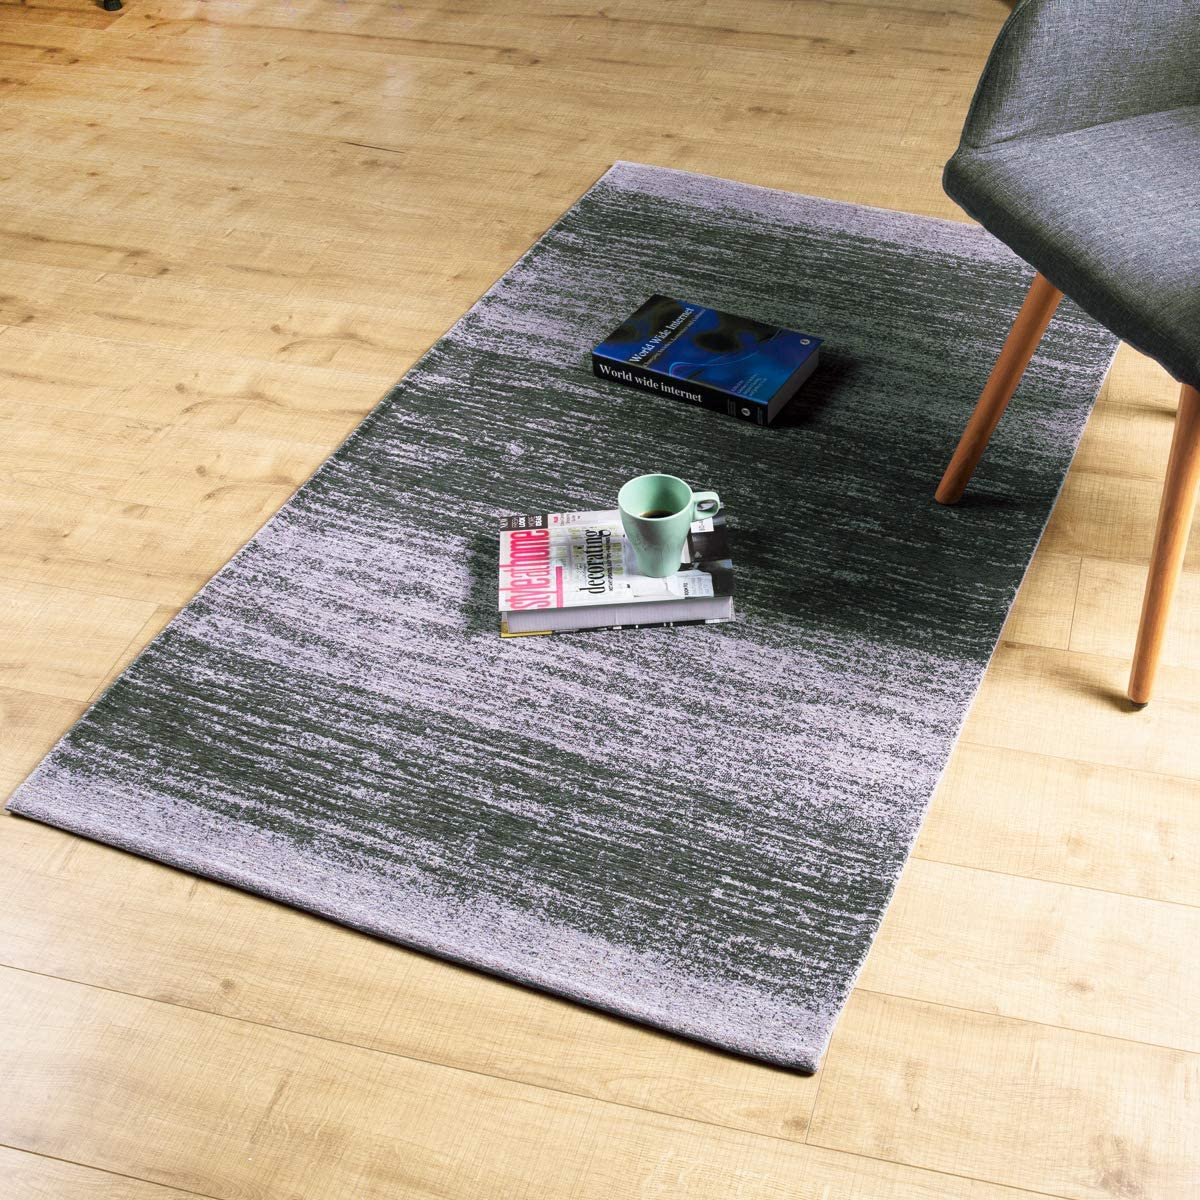 AMIDA 3x5 Rugs for Entryway Grey Skid Spring new work Deluxe Washable - Machine Non Abs